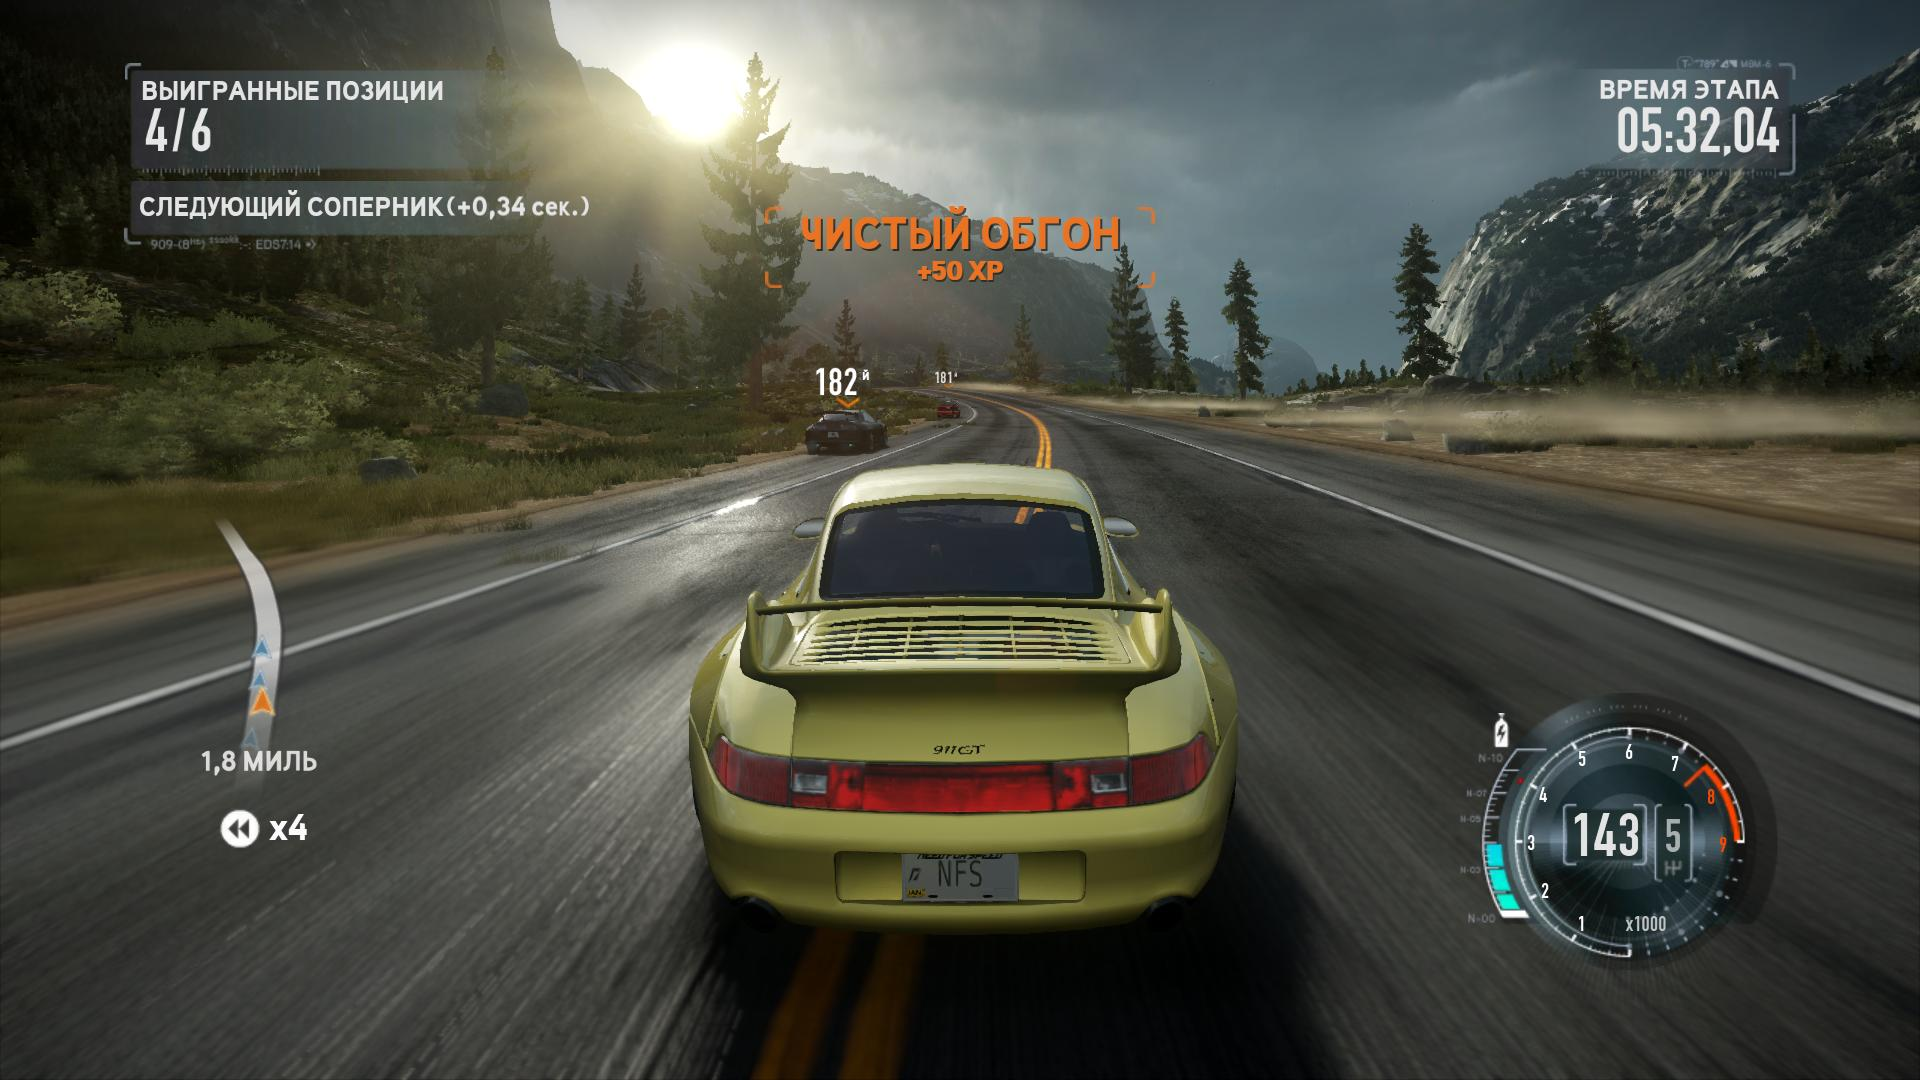 Need-for-speed-the-run-UPRAVLENIE-RUL. need for speed the run УПРАВЛЕНИЕ Р